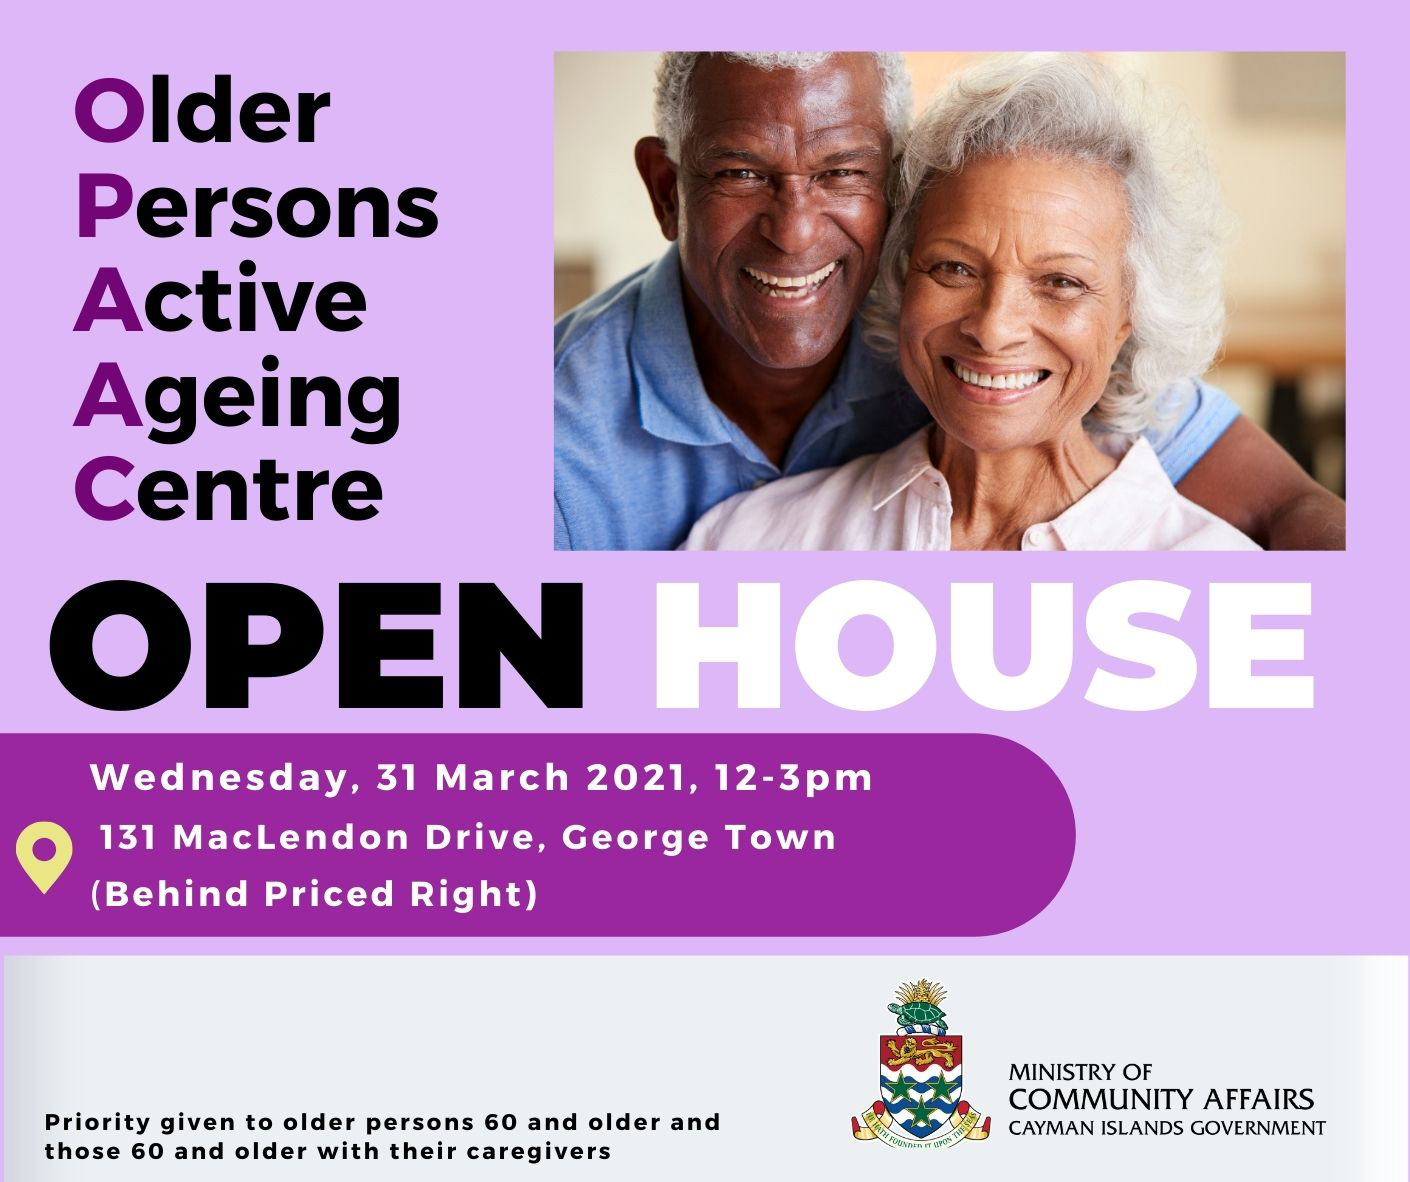 OPEN HOUSE - Older Persons Active Ageing Centre